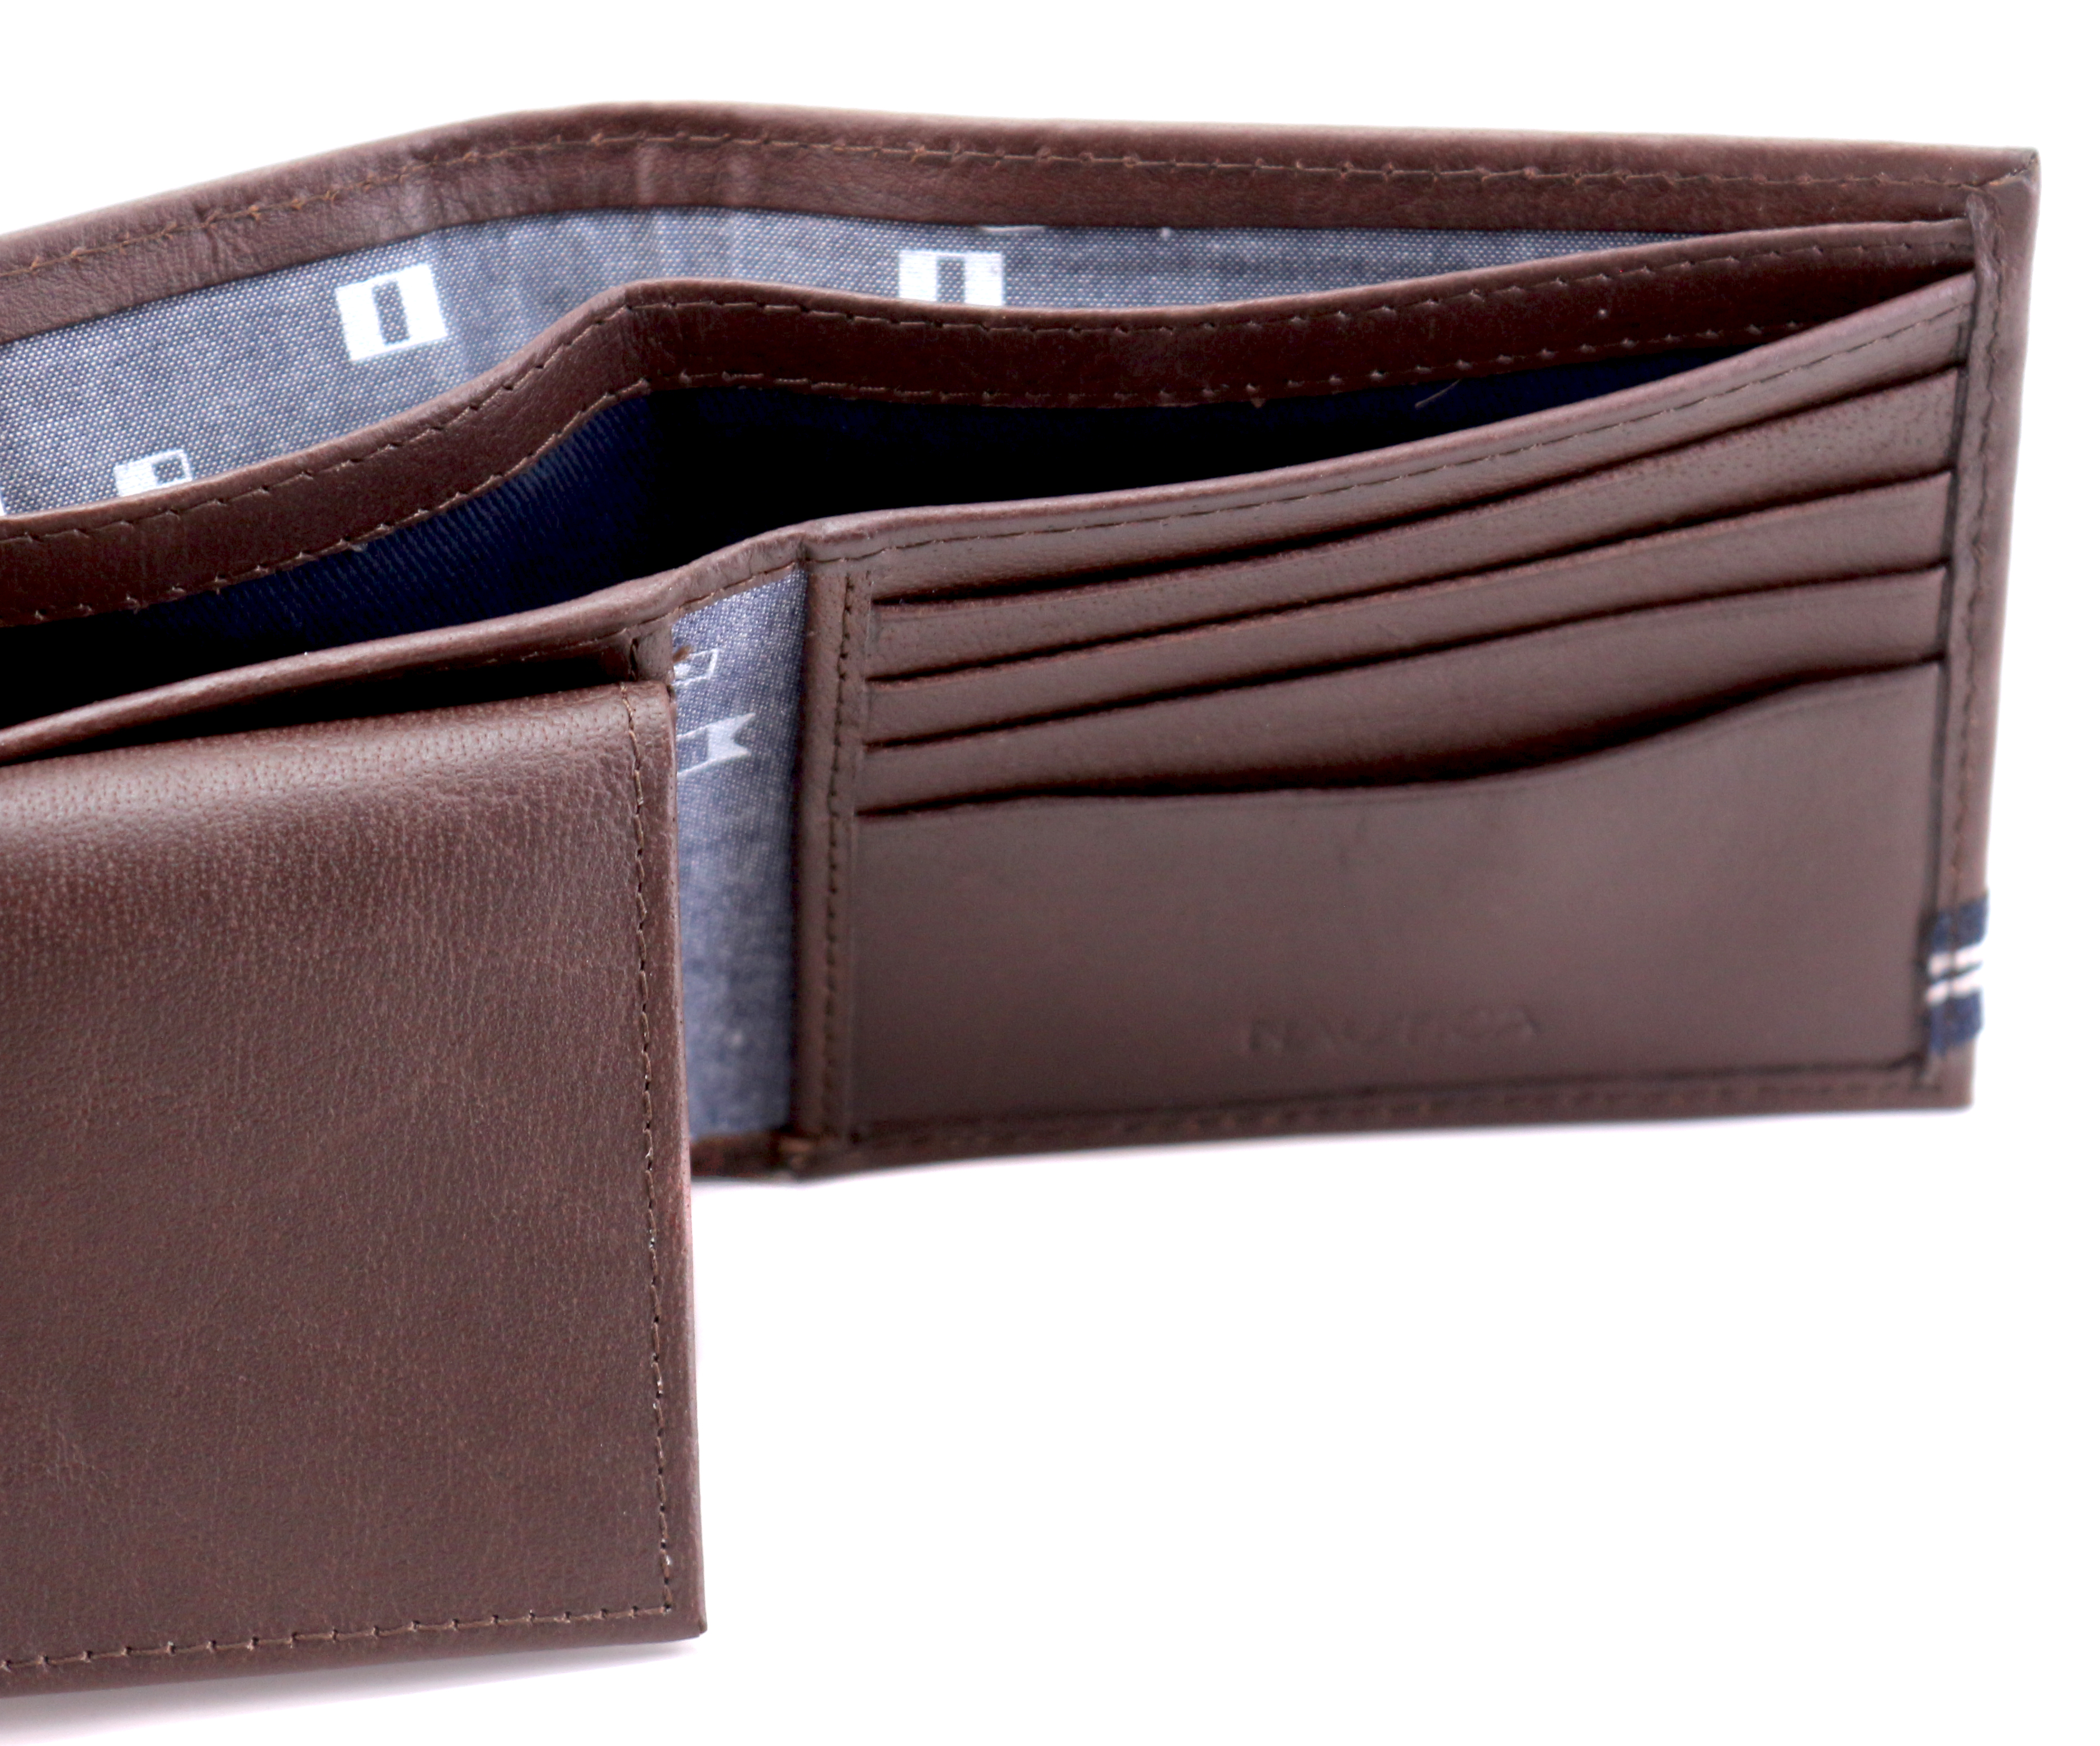 Nautica-Men-039-s-Genuine-Leather-Credit-Card-ID-Double-Billfold-Passcase-Wallet thumbnail 18